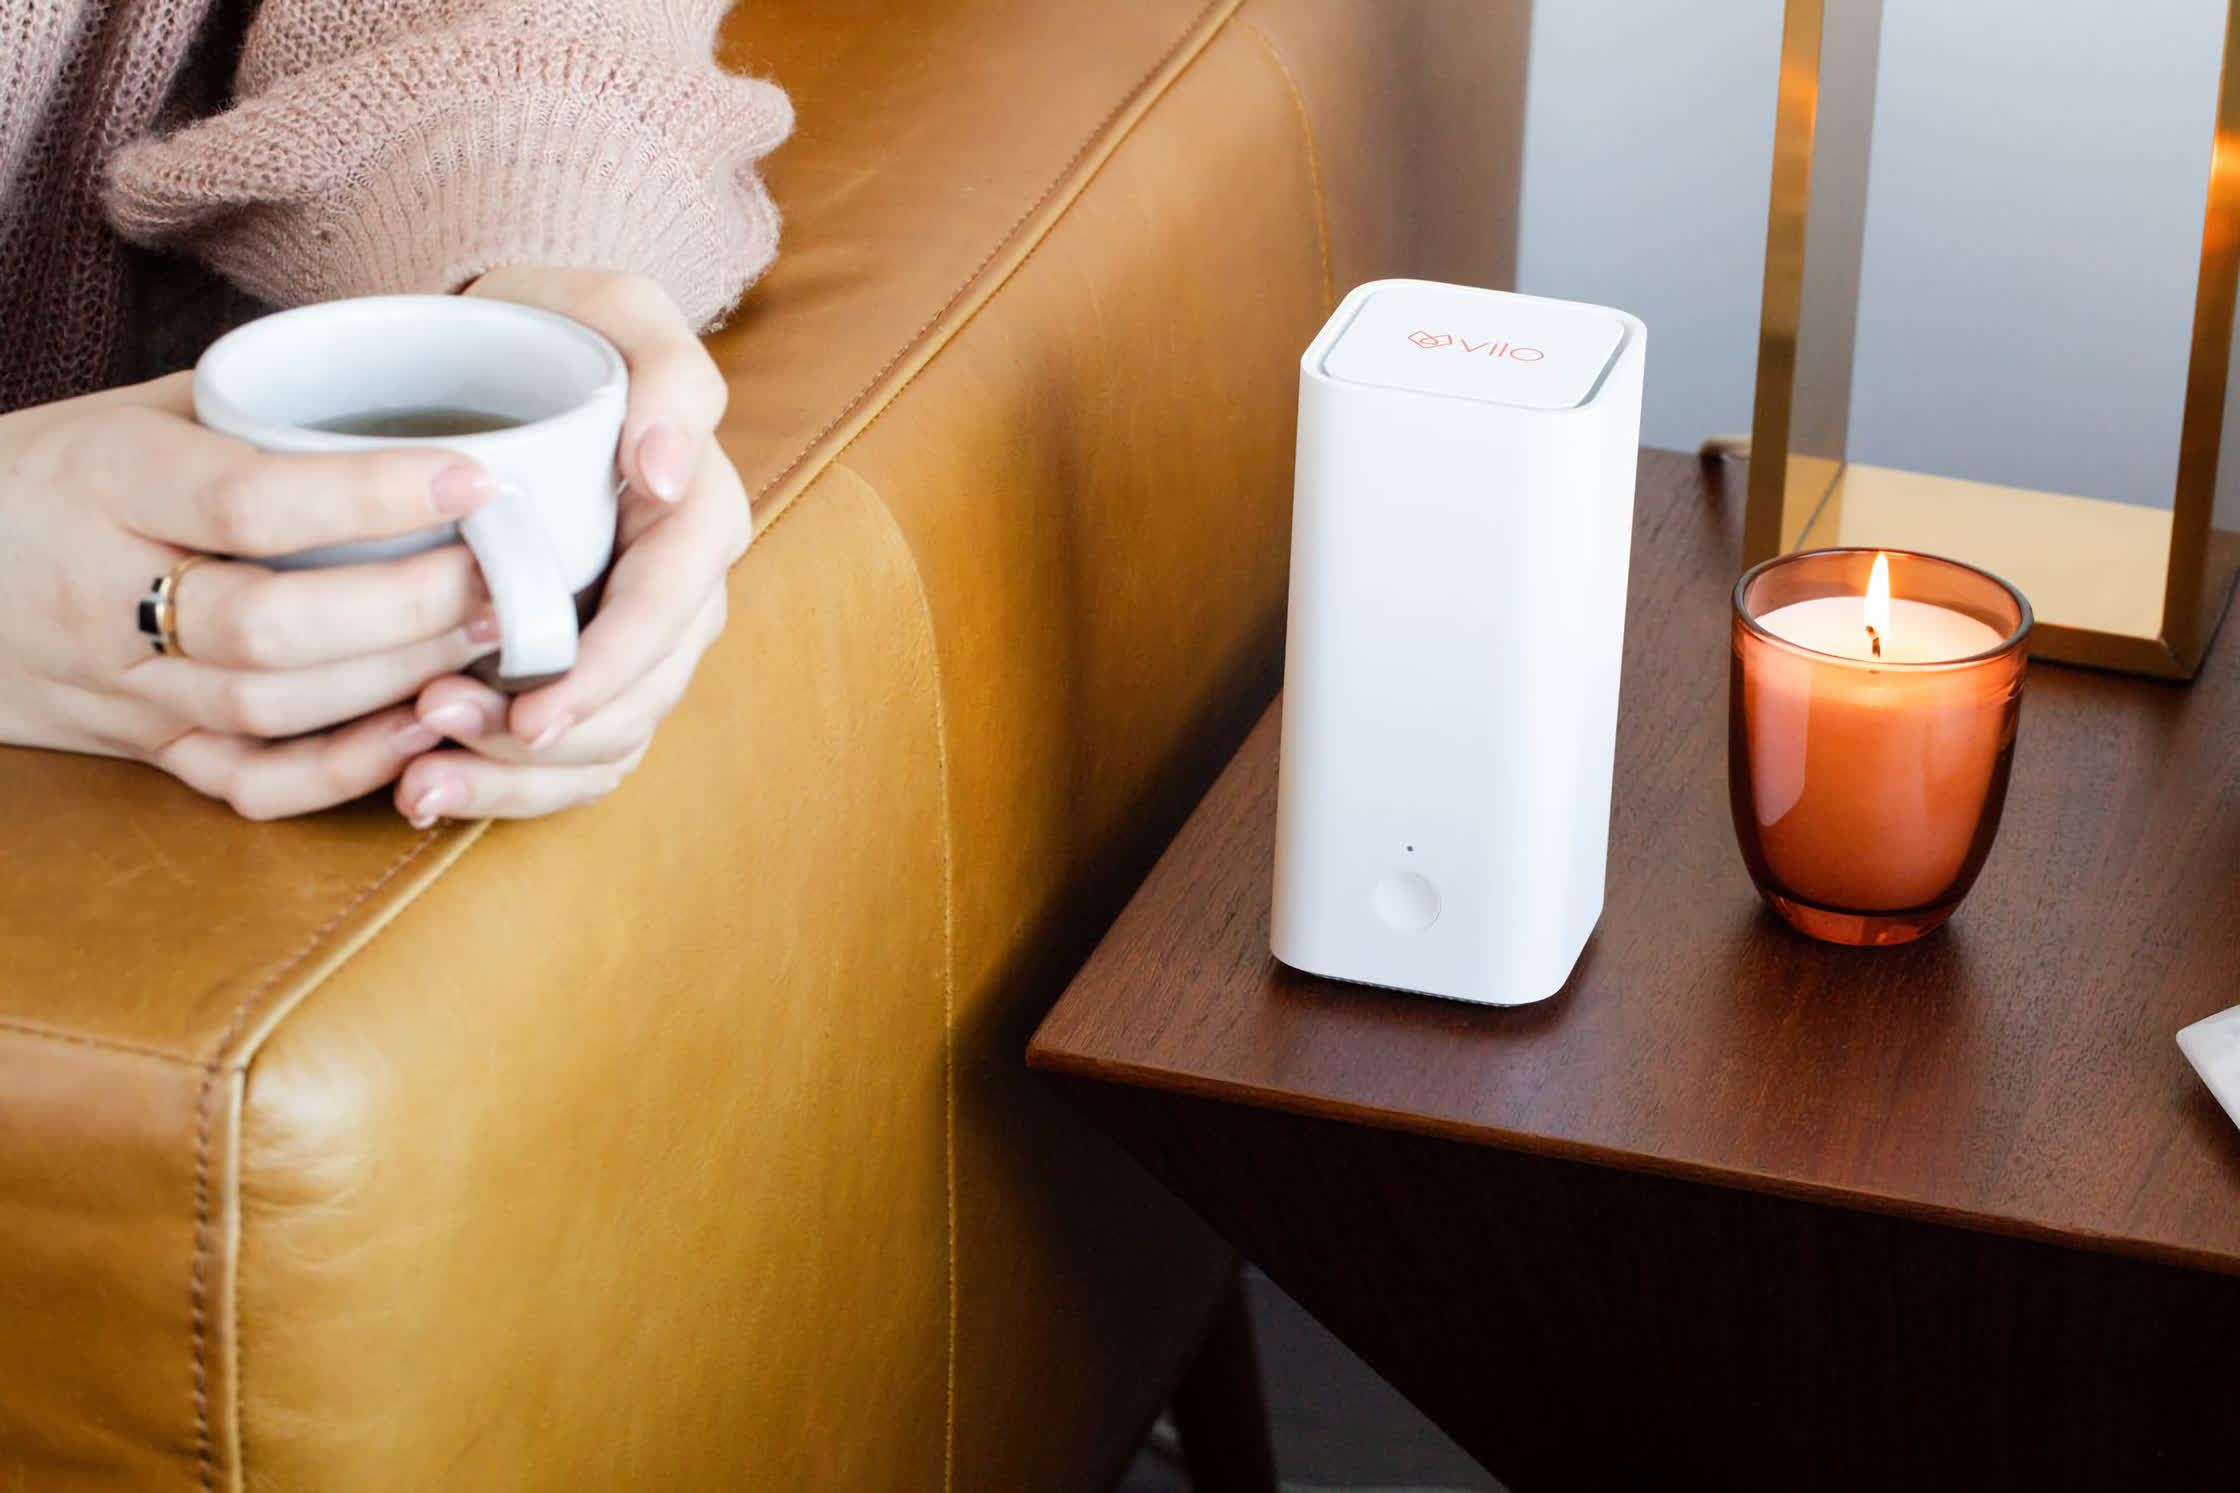 Vilo's mesh Wi-Fi system starts at just $19.99